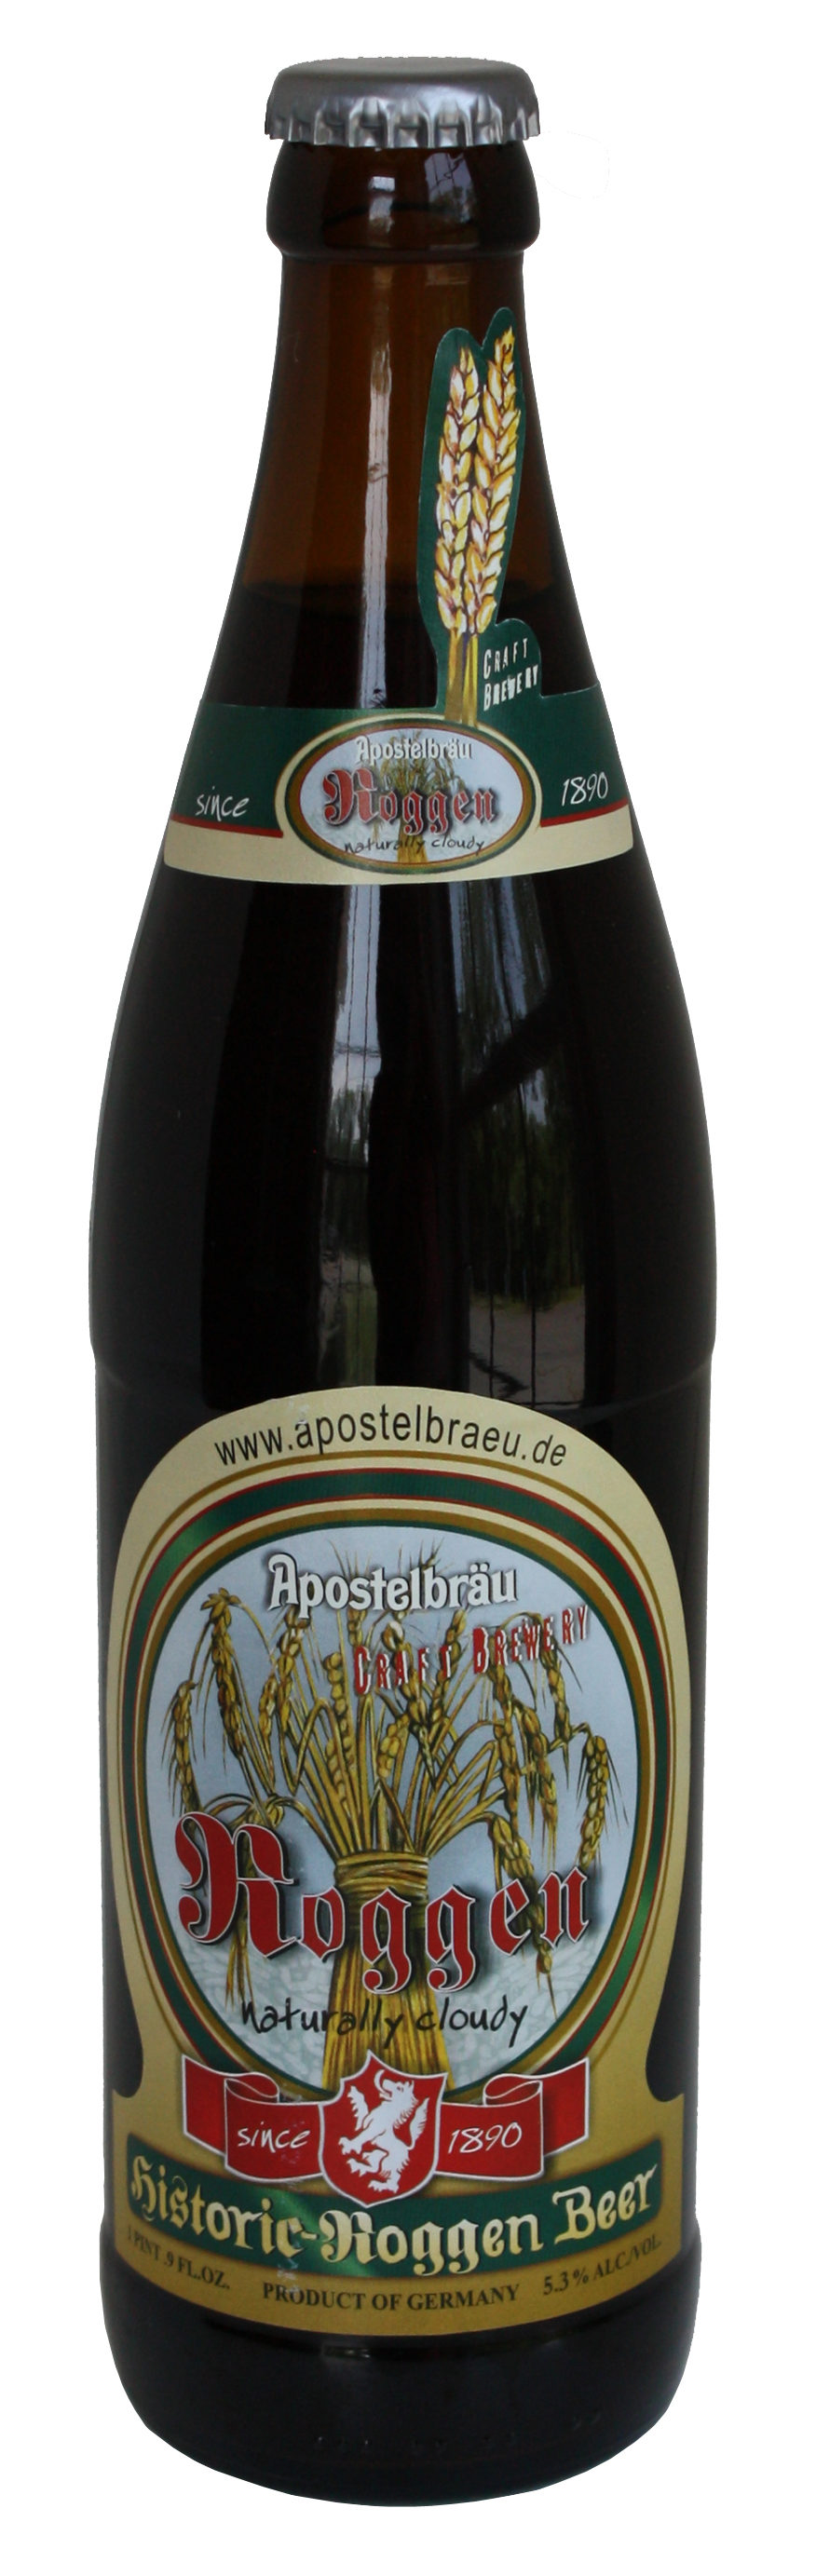 Historic Roggenbier bottle